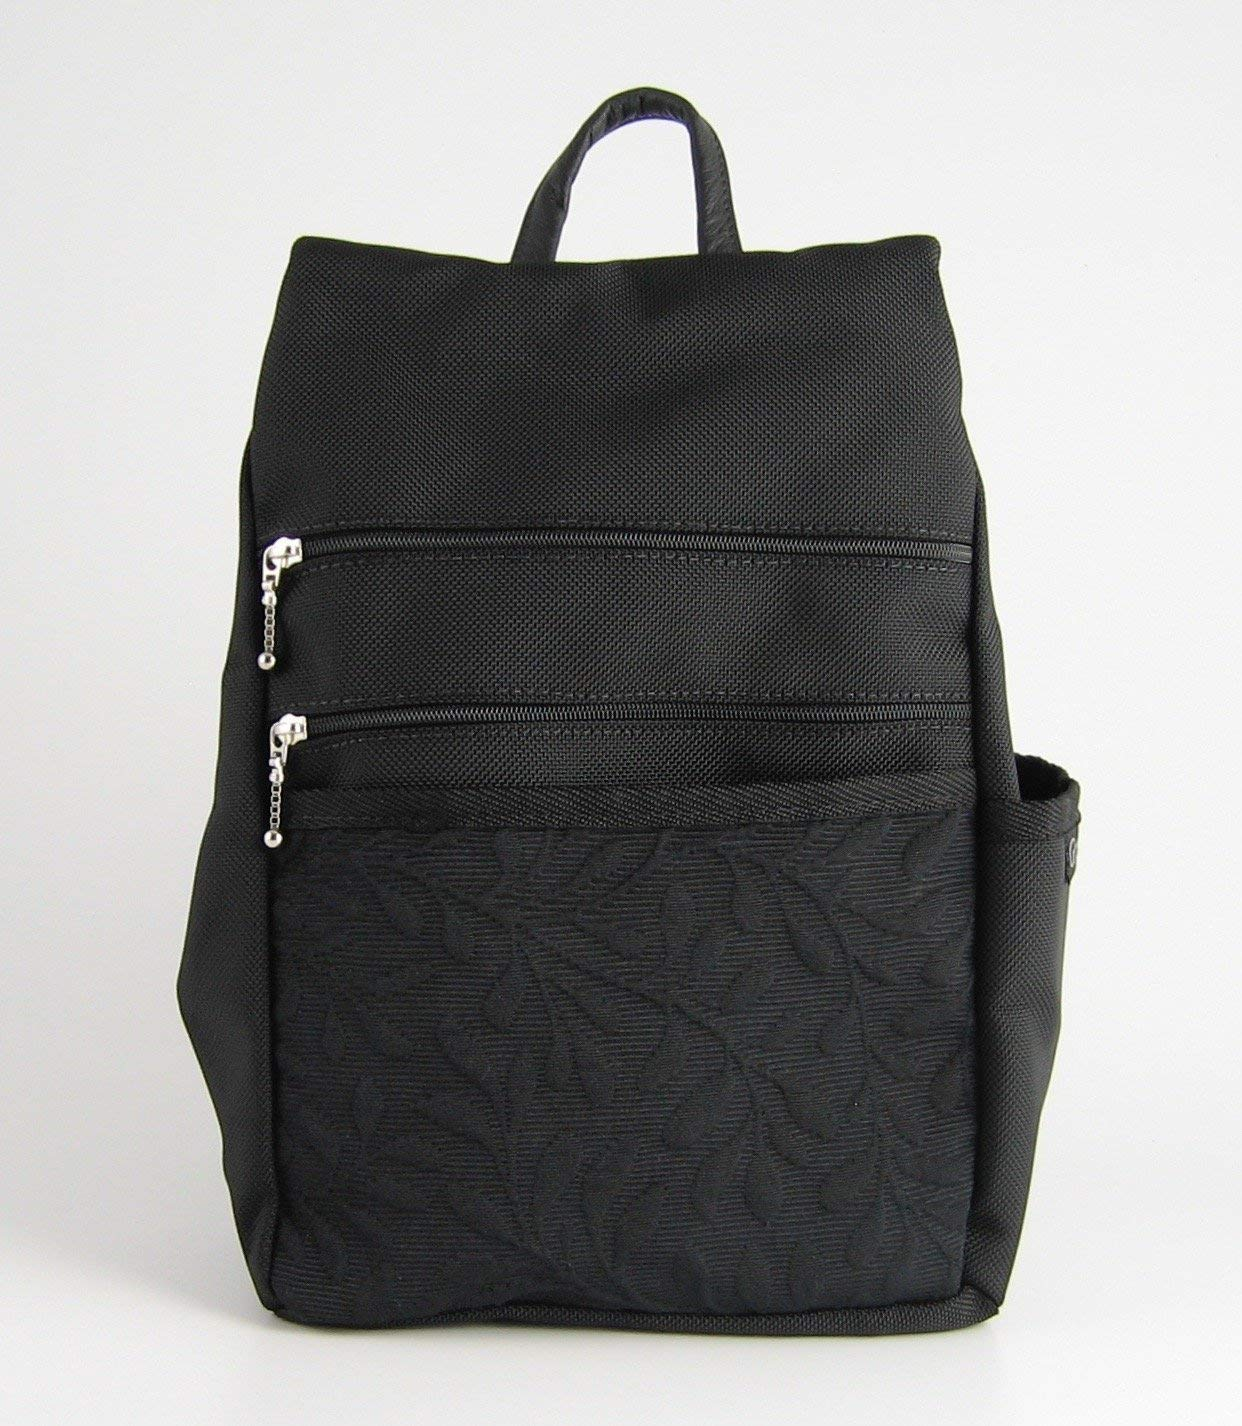 8fbd19c978ea Amazon.com  Backpack Purse by GreatBags